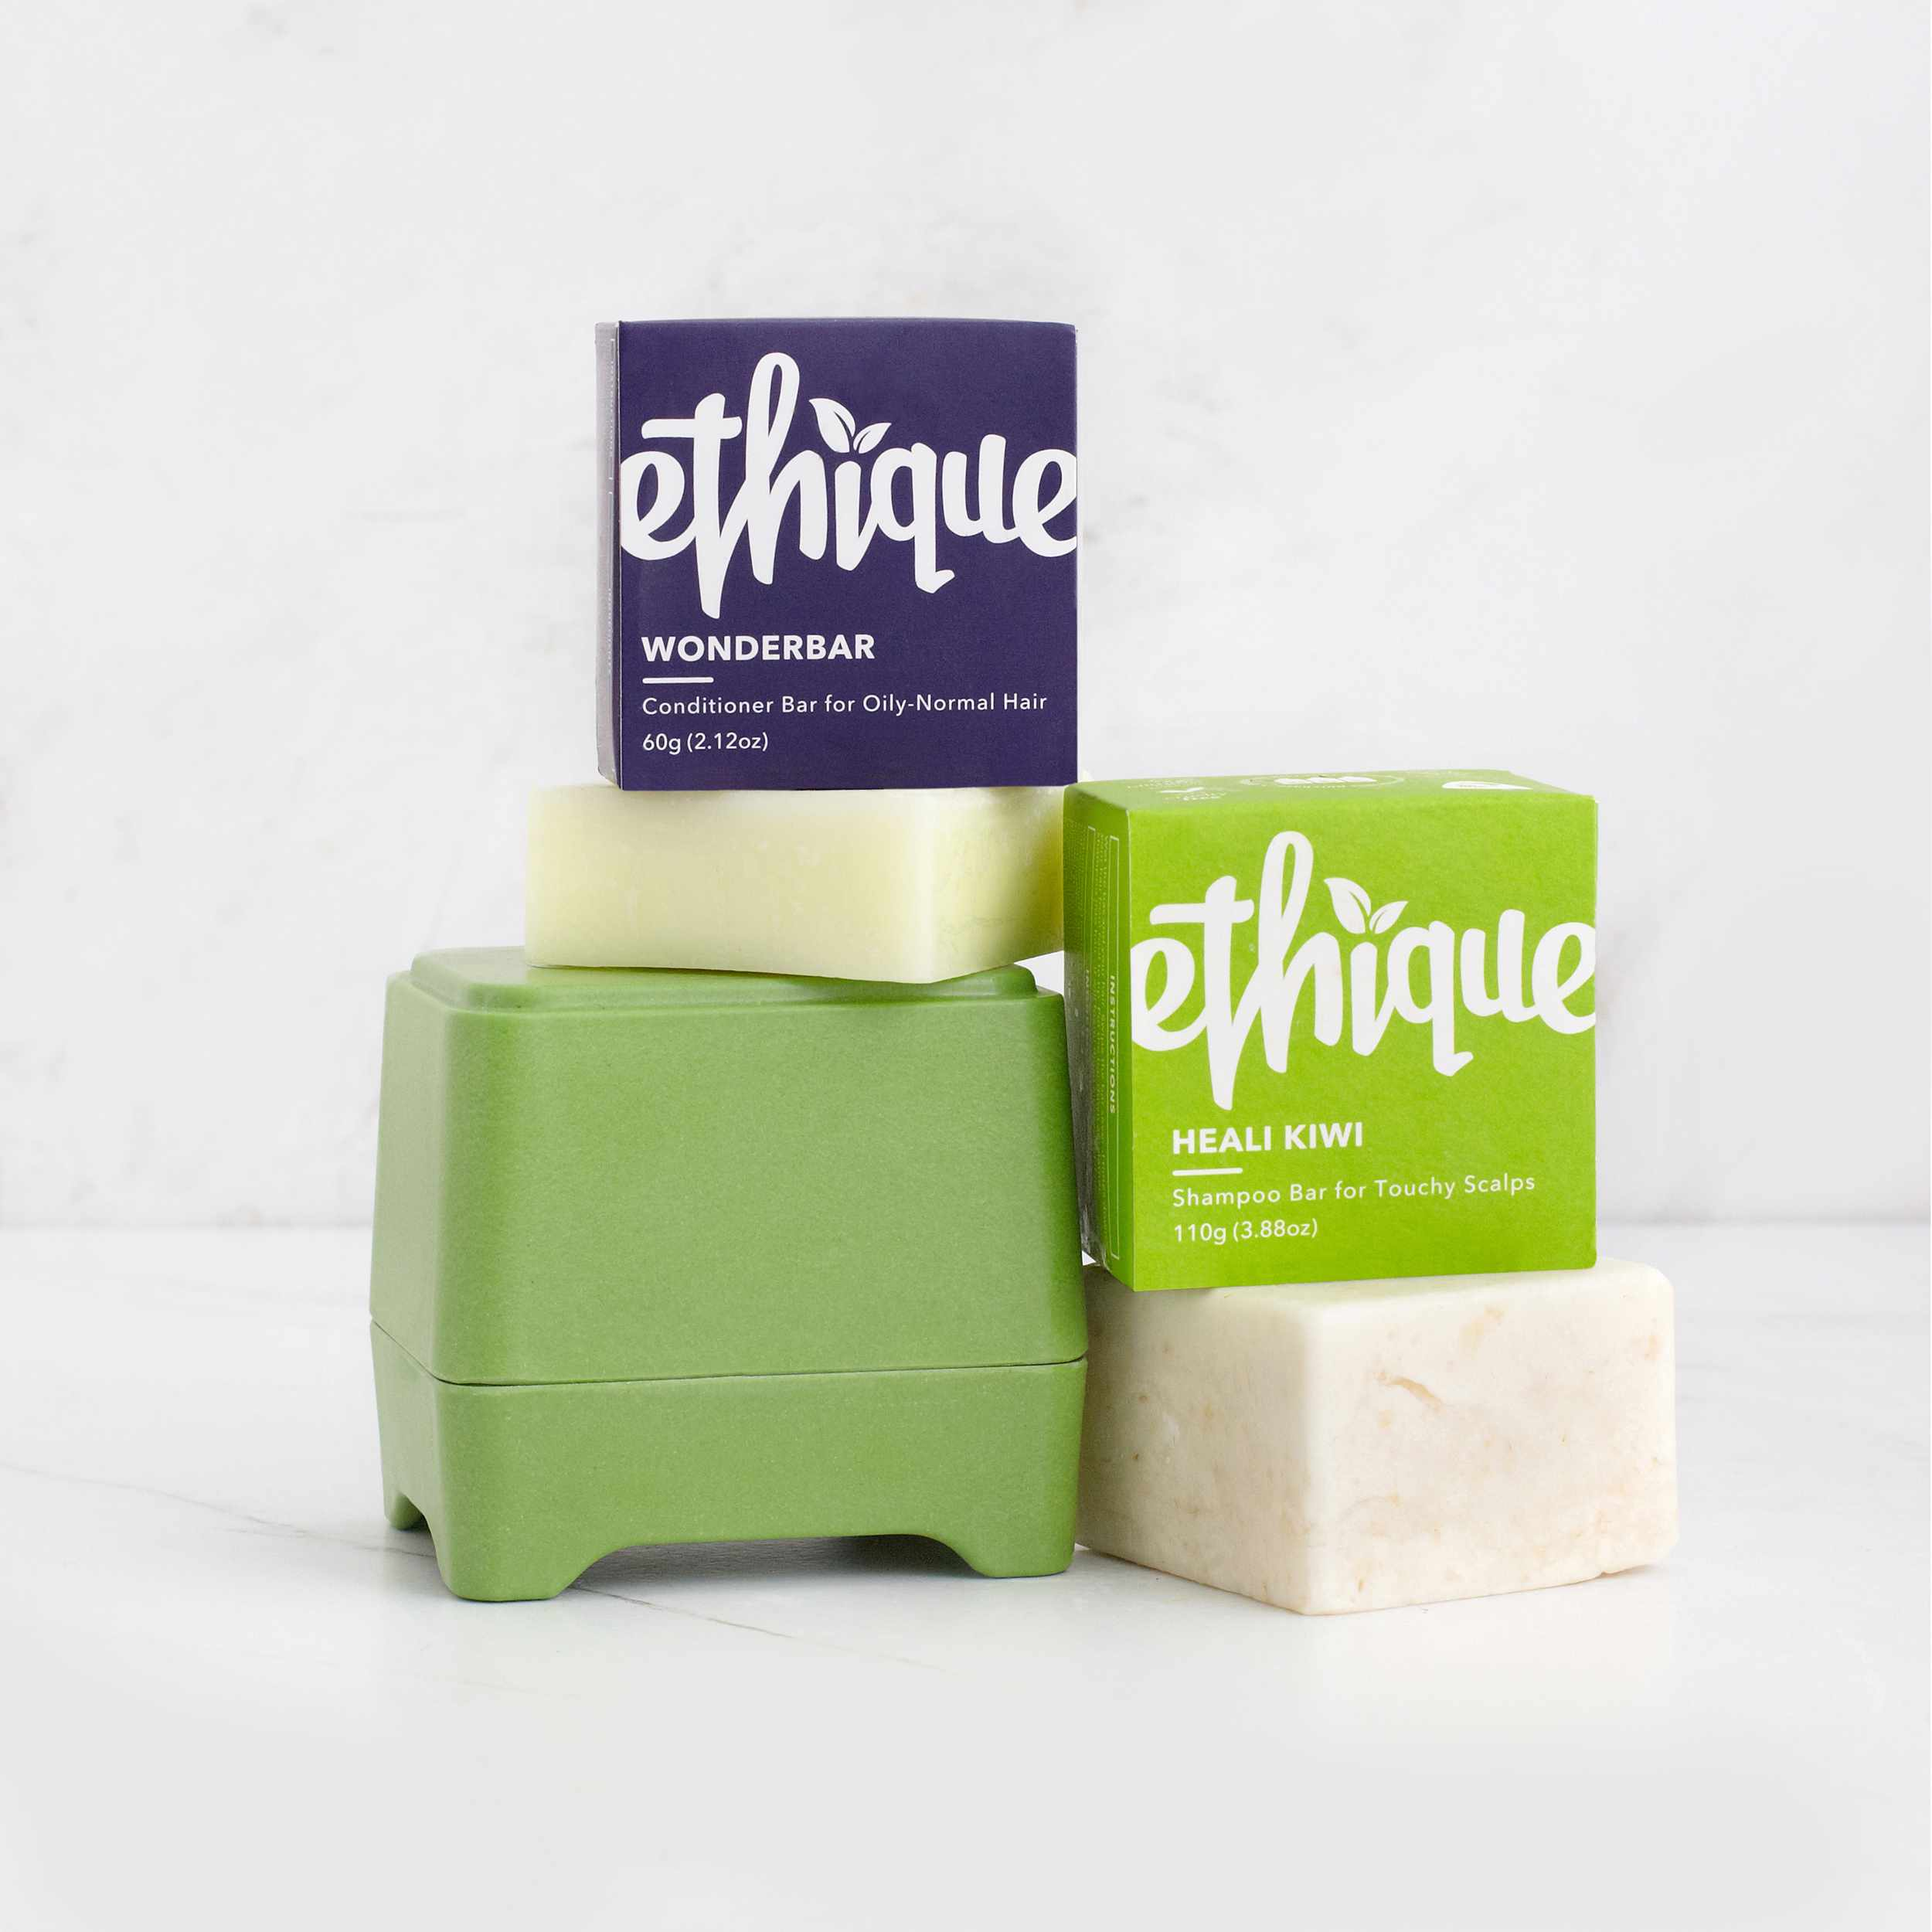 Ethique shampoo bar for hair in with sustainable packaging.